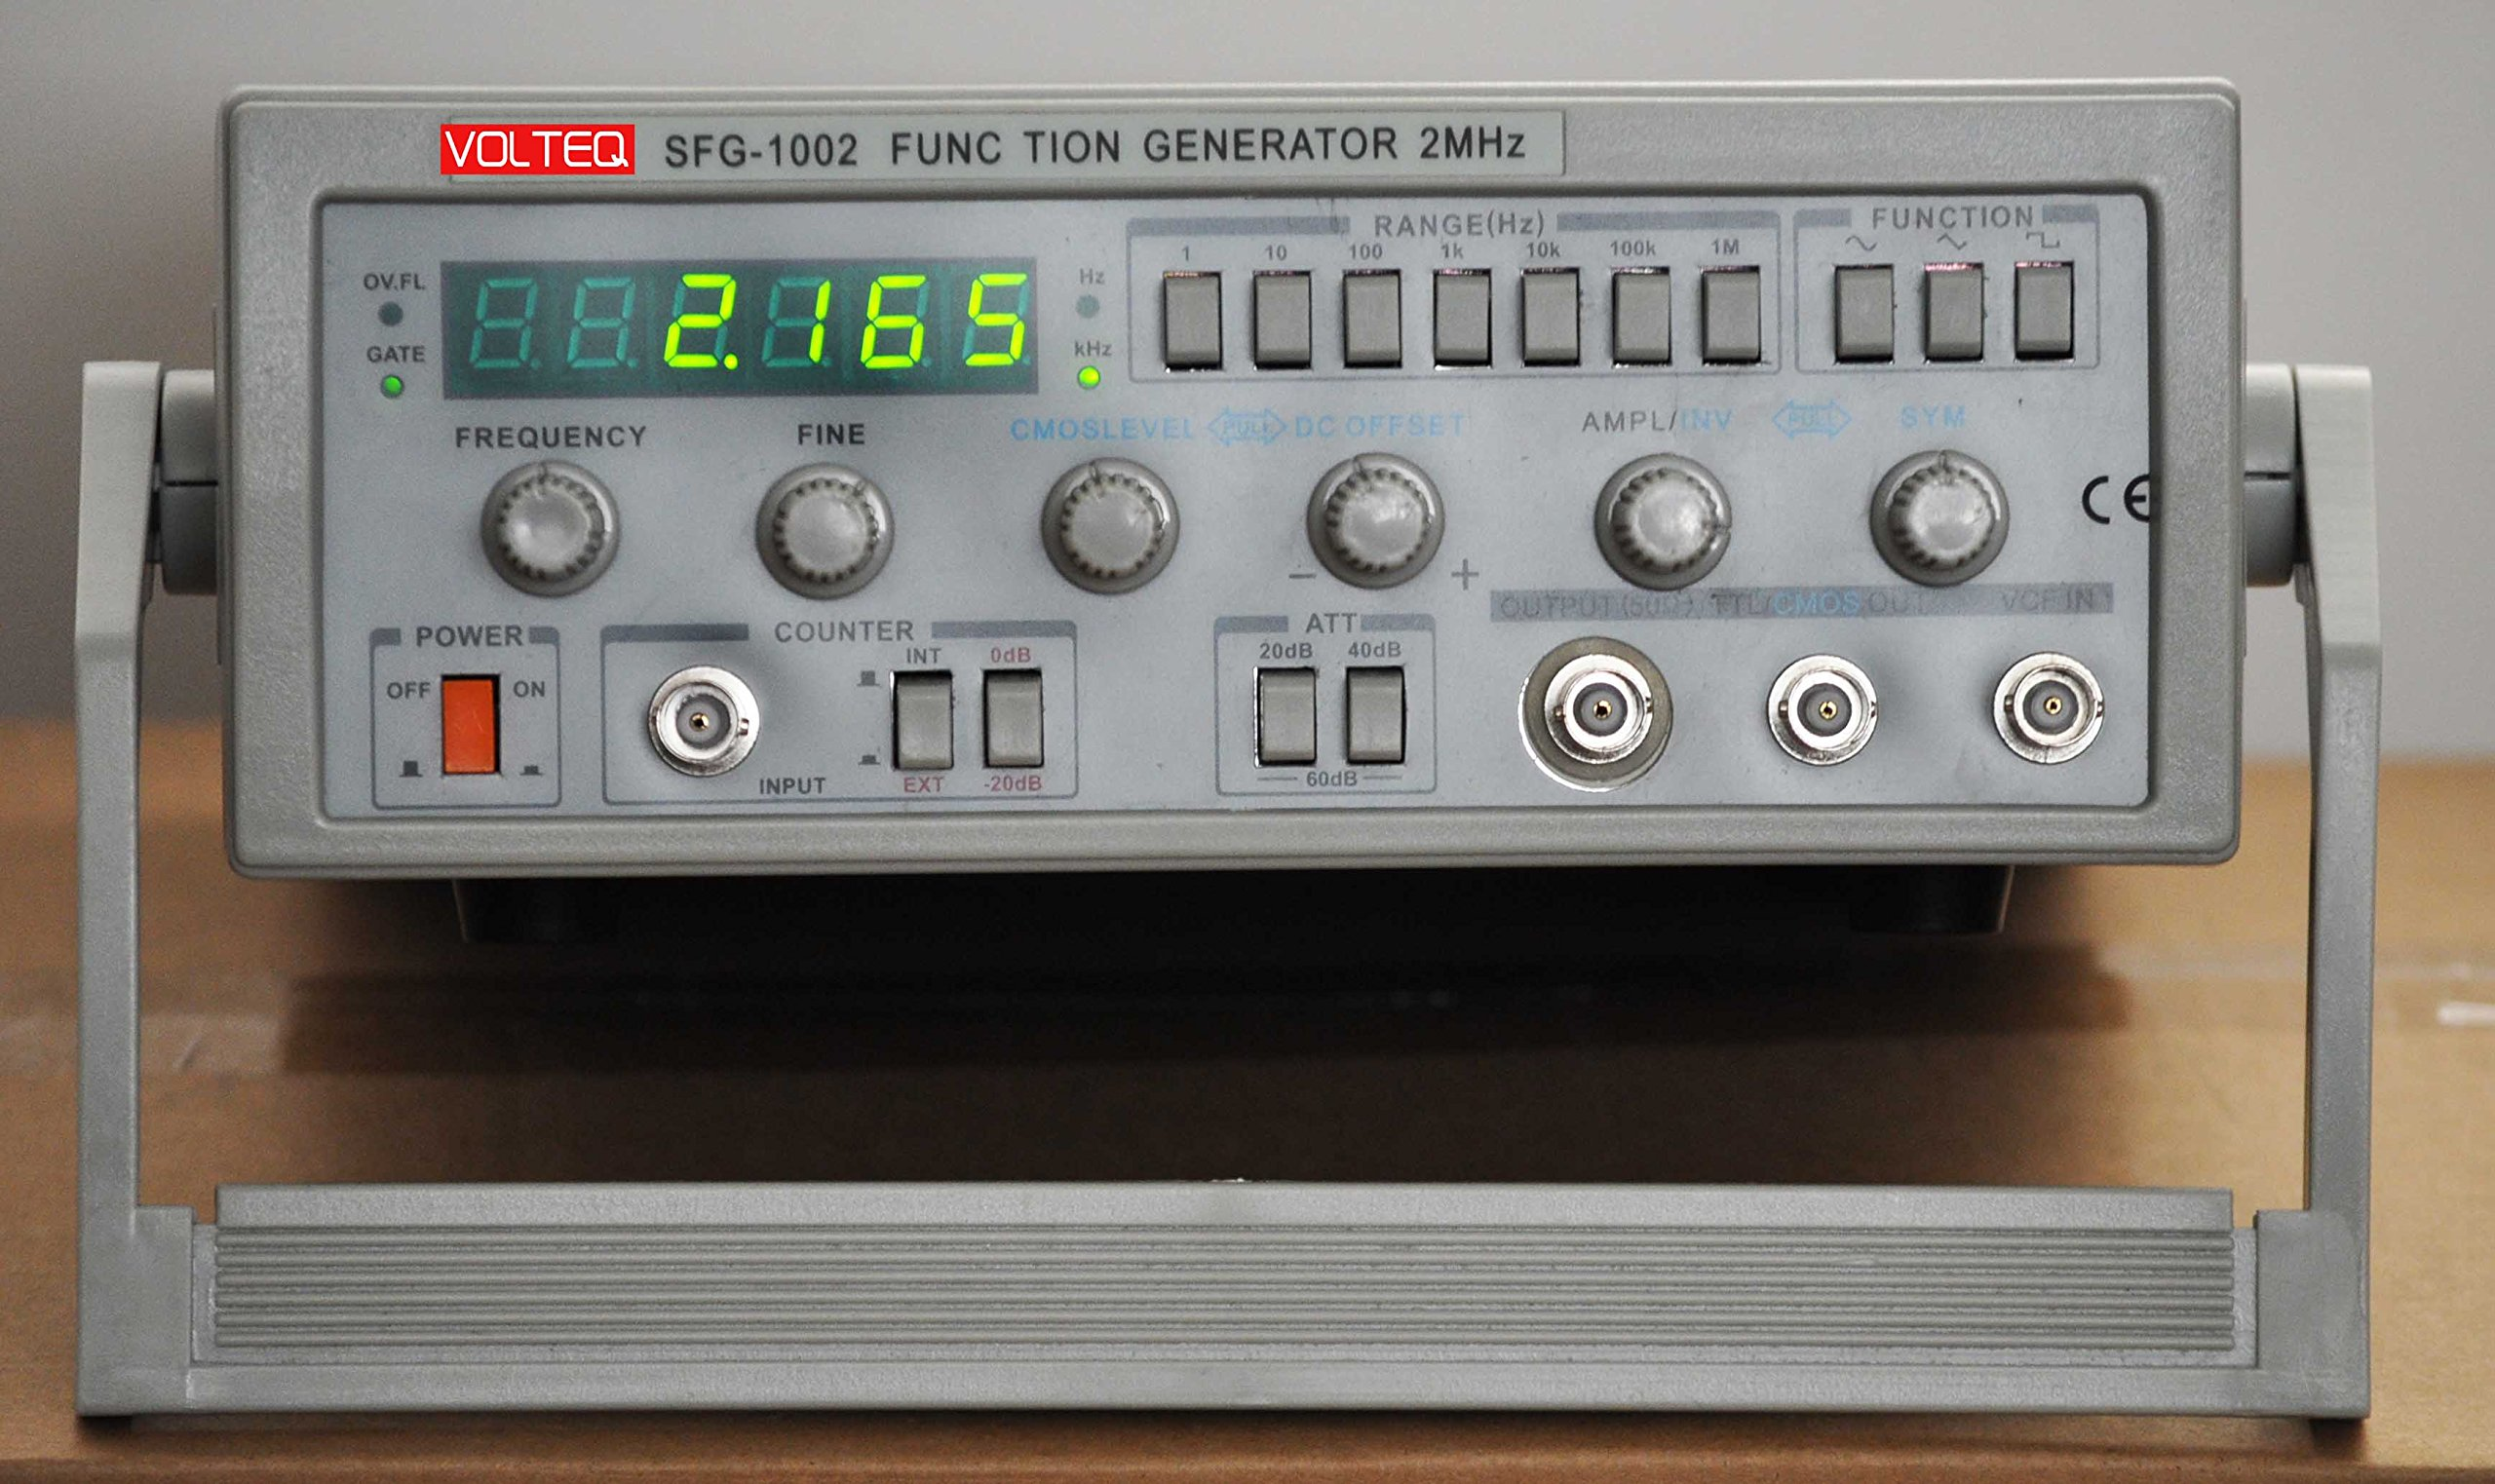 2 MHz Function Generator/Frequency Counter SFG-1002